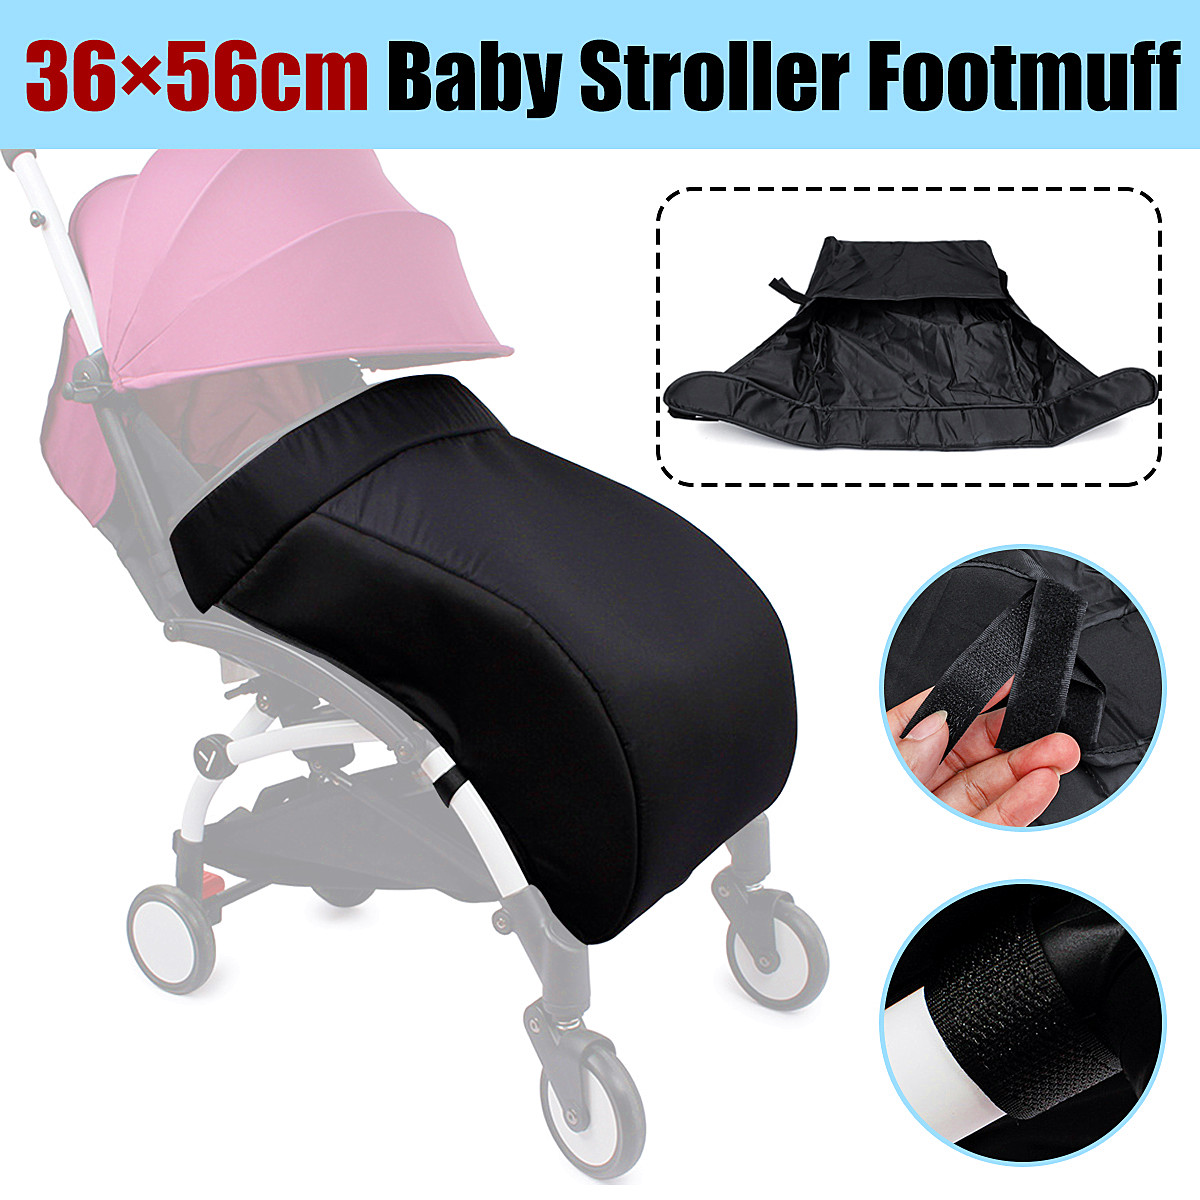 Universal Baby Stroller Footmuff Foot Cover Anti Wind Warm For yoyo For yoya For vovo Baby Throne Pram Foot Covers Case Bag